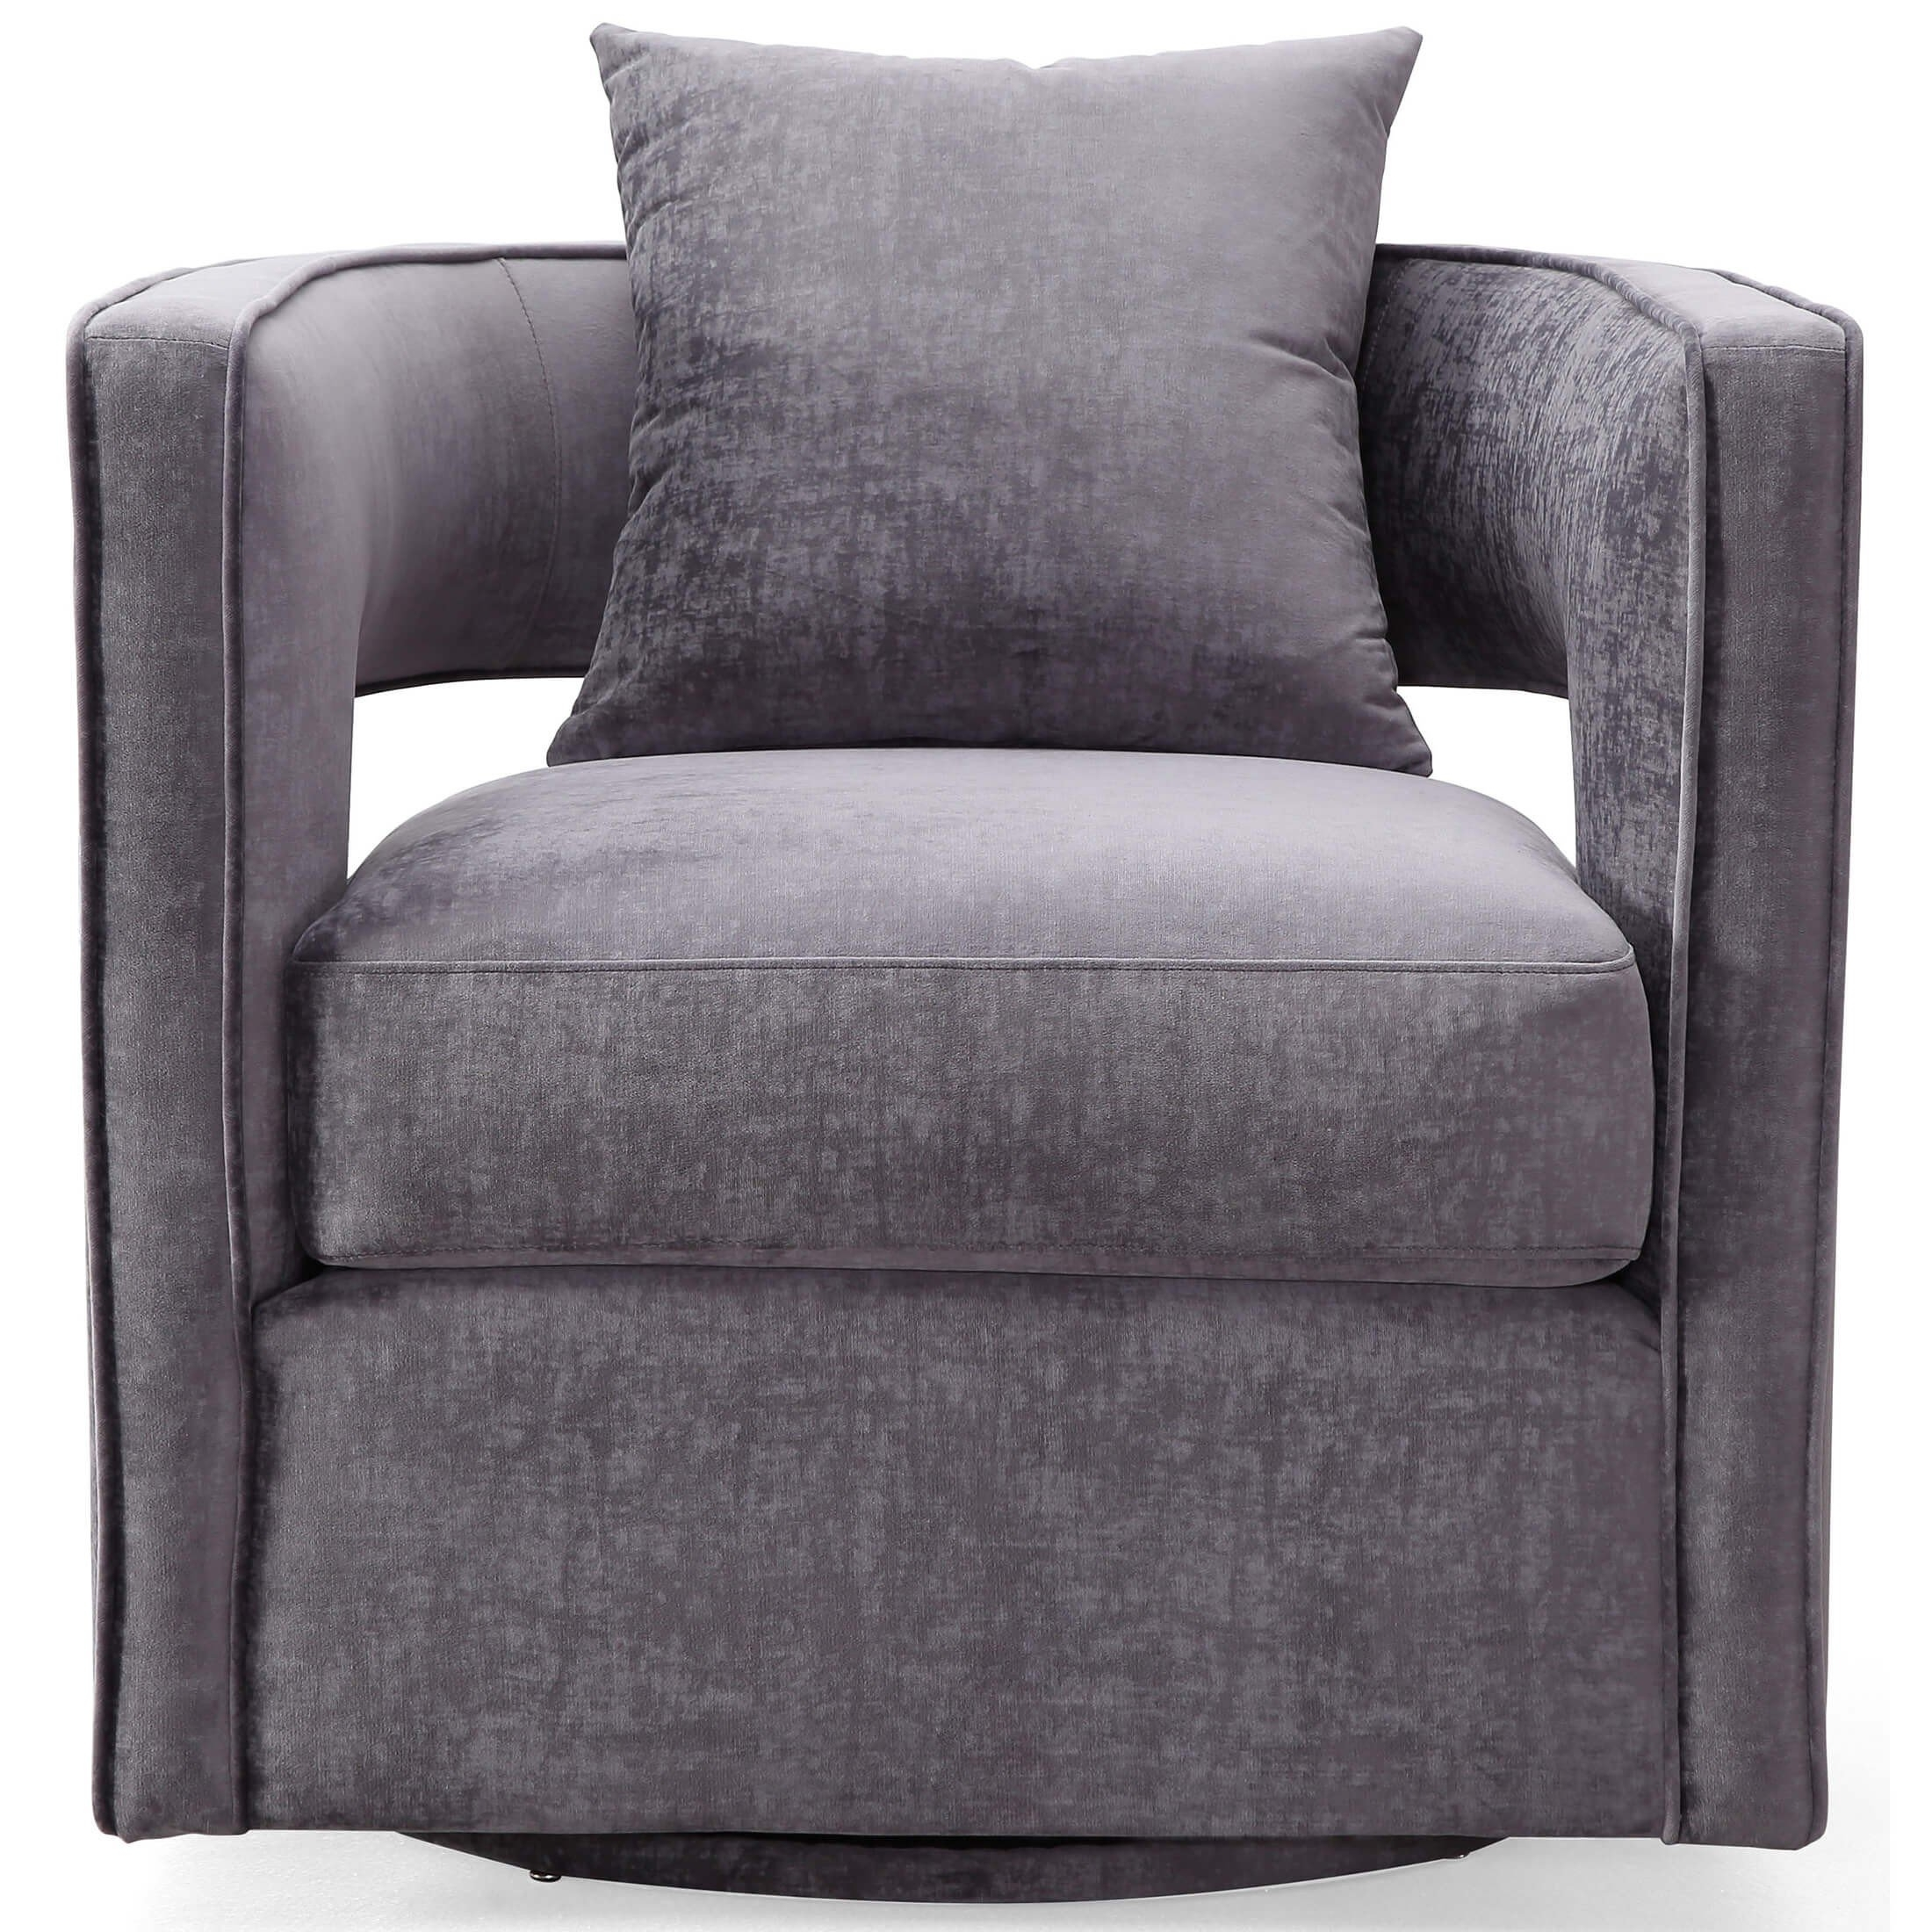 Picture 31 Of 35 – Oversized Round Chair Inspirational Sofas In Sofas With Swivel Chair (View 9 of 10)